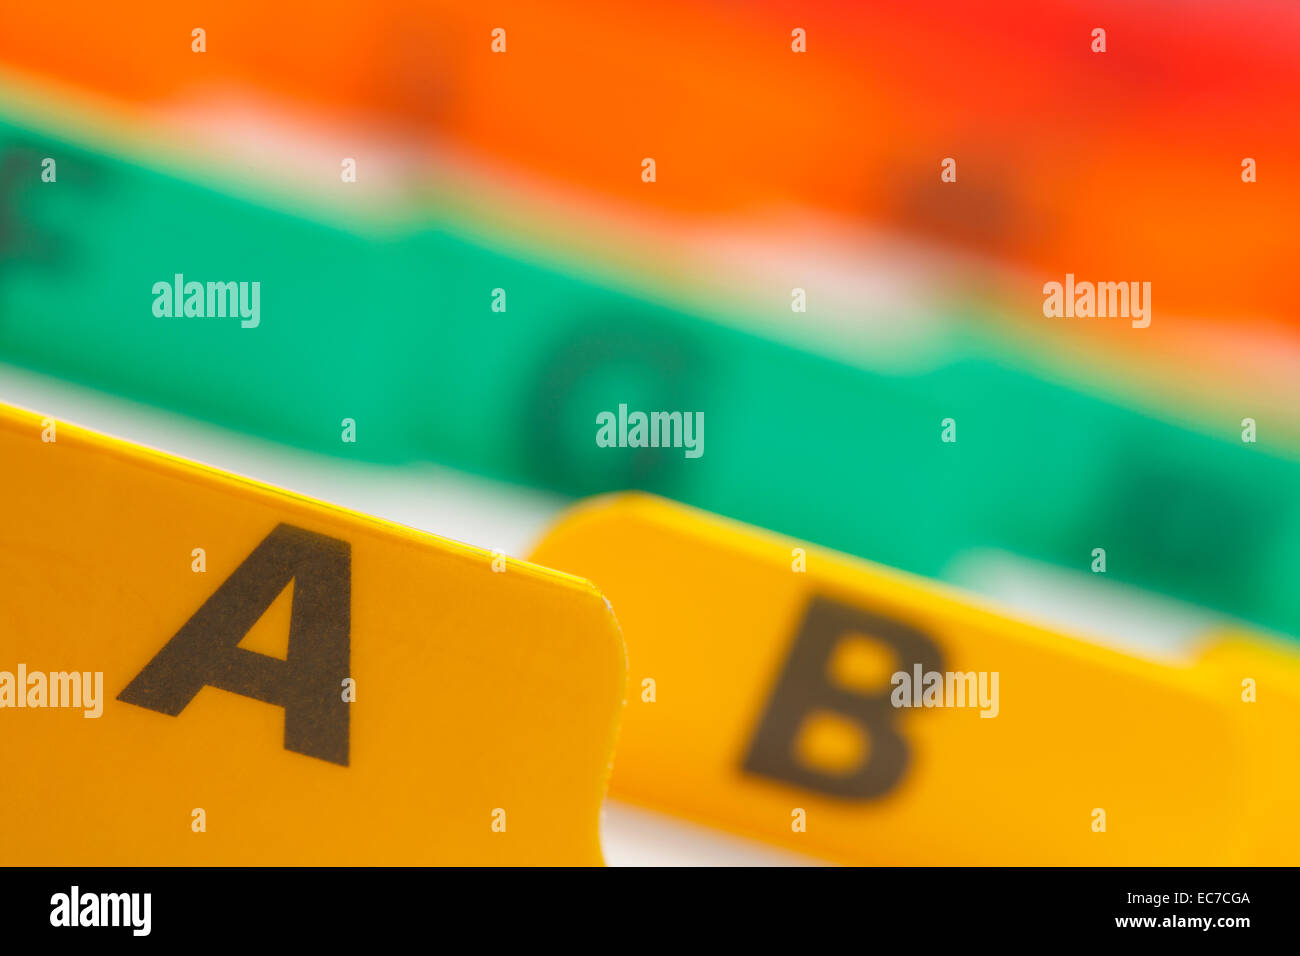 Card filing system stock photos card filing system stock images alphabetical color coded business card file system stock image colourmoves